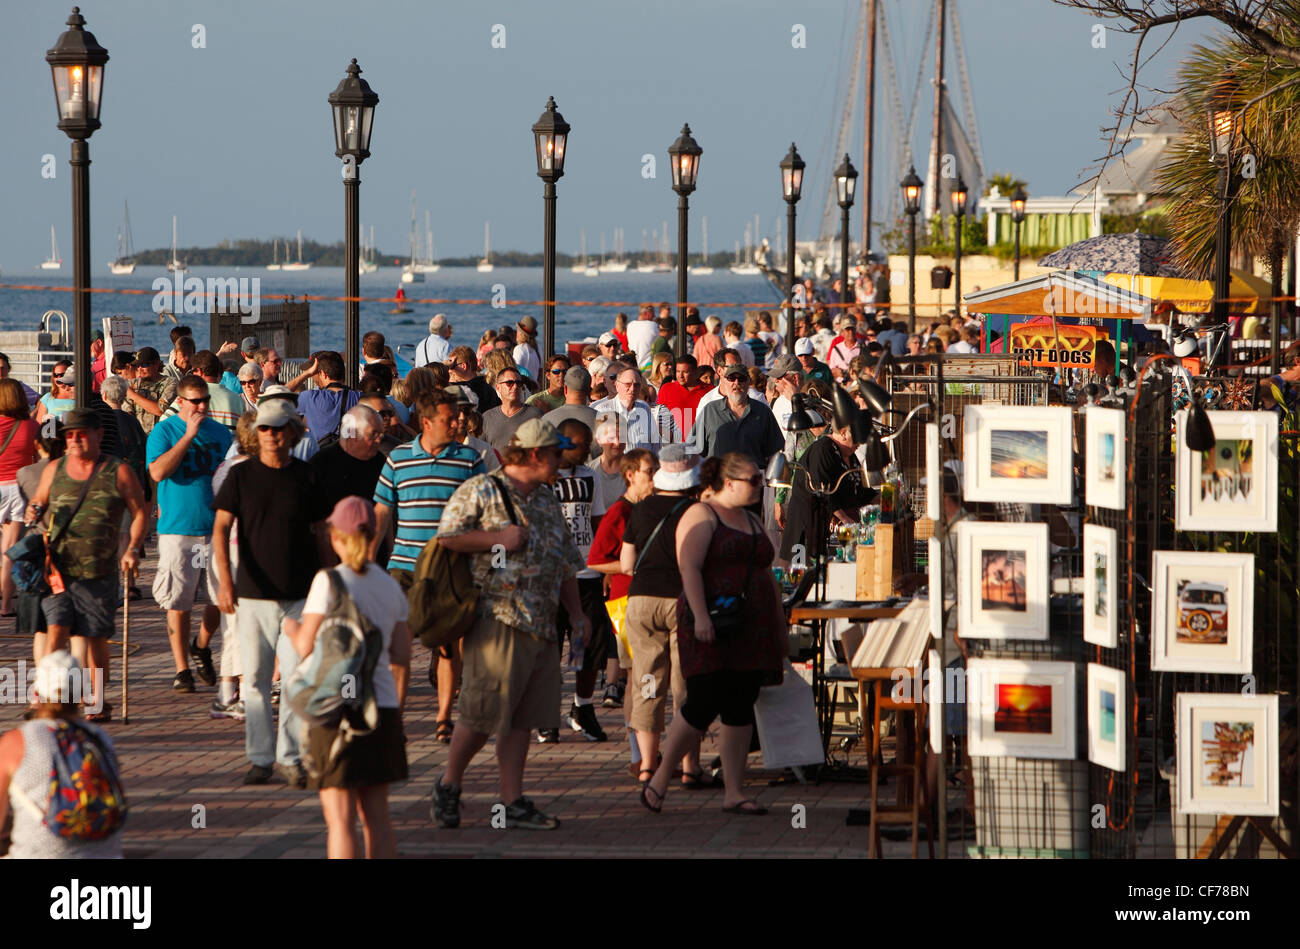 A crowd near sunset at Mallory Square, Key West, Florida - Stock Image